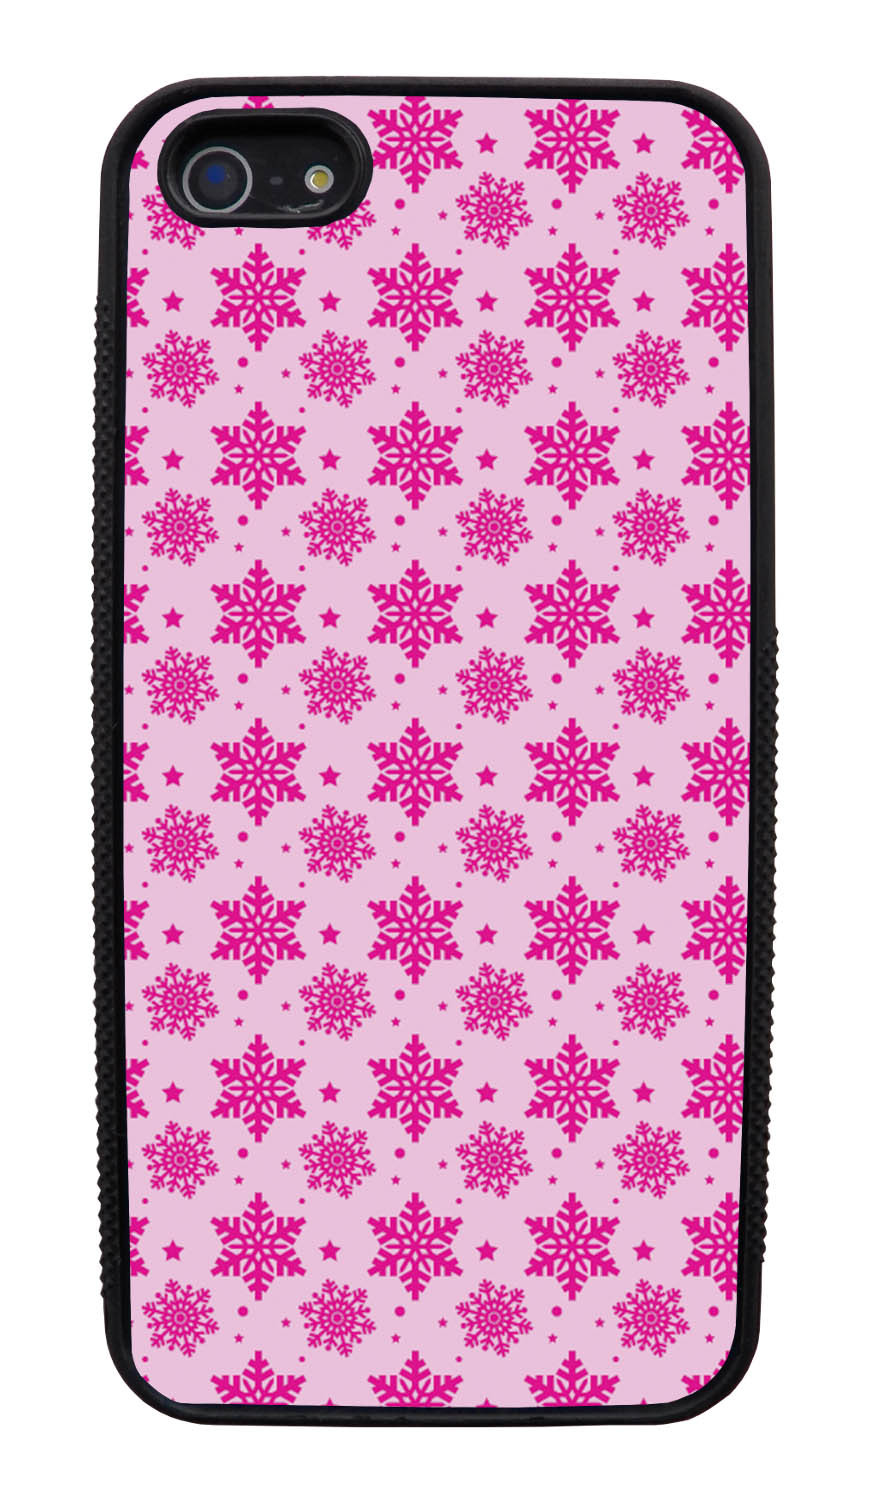 Apple iPhone 5 / 5S Pink Case - Hot Pink Snowflakes on Pink - Fall And Winter - Black Slim Rubber Case